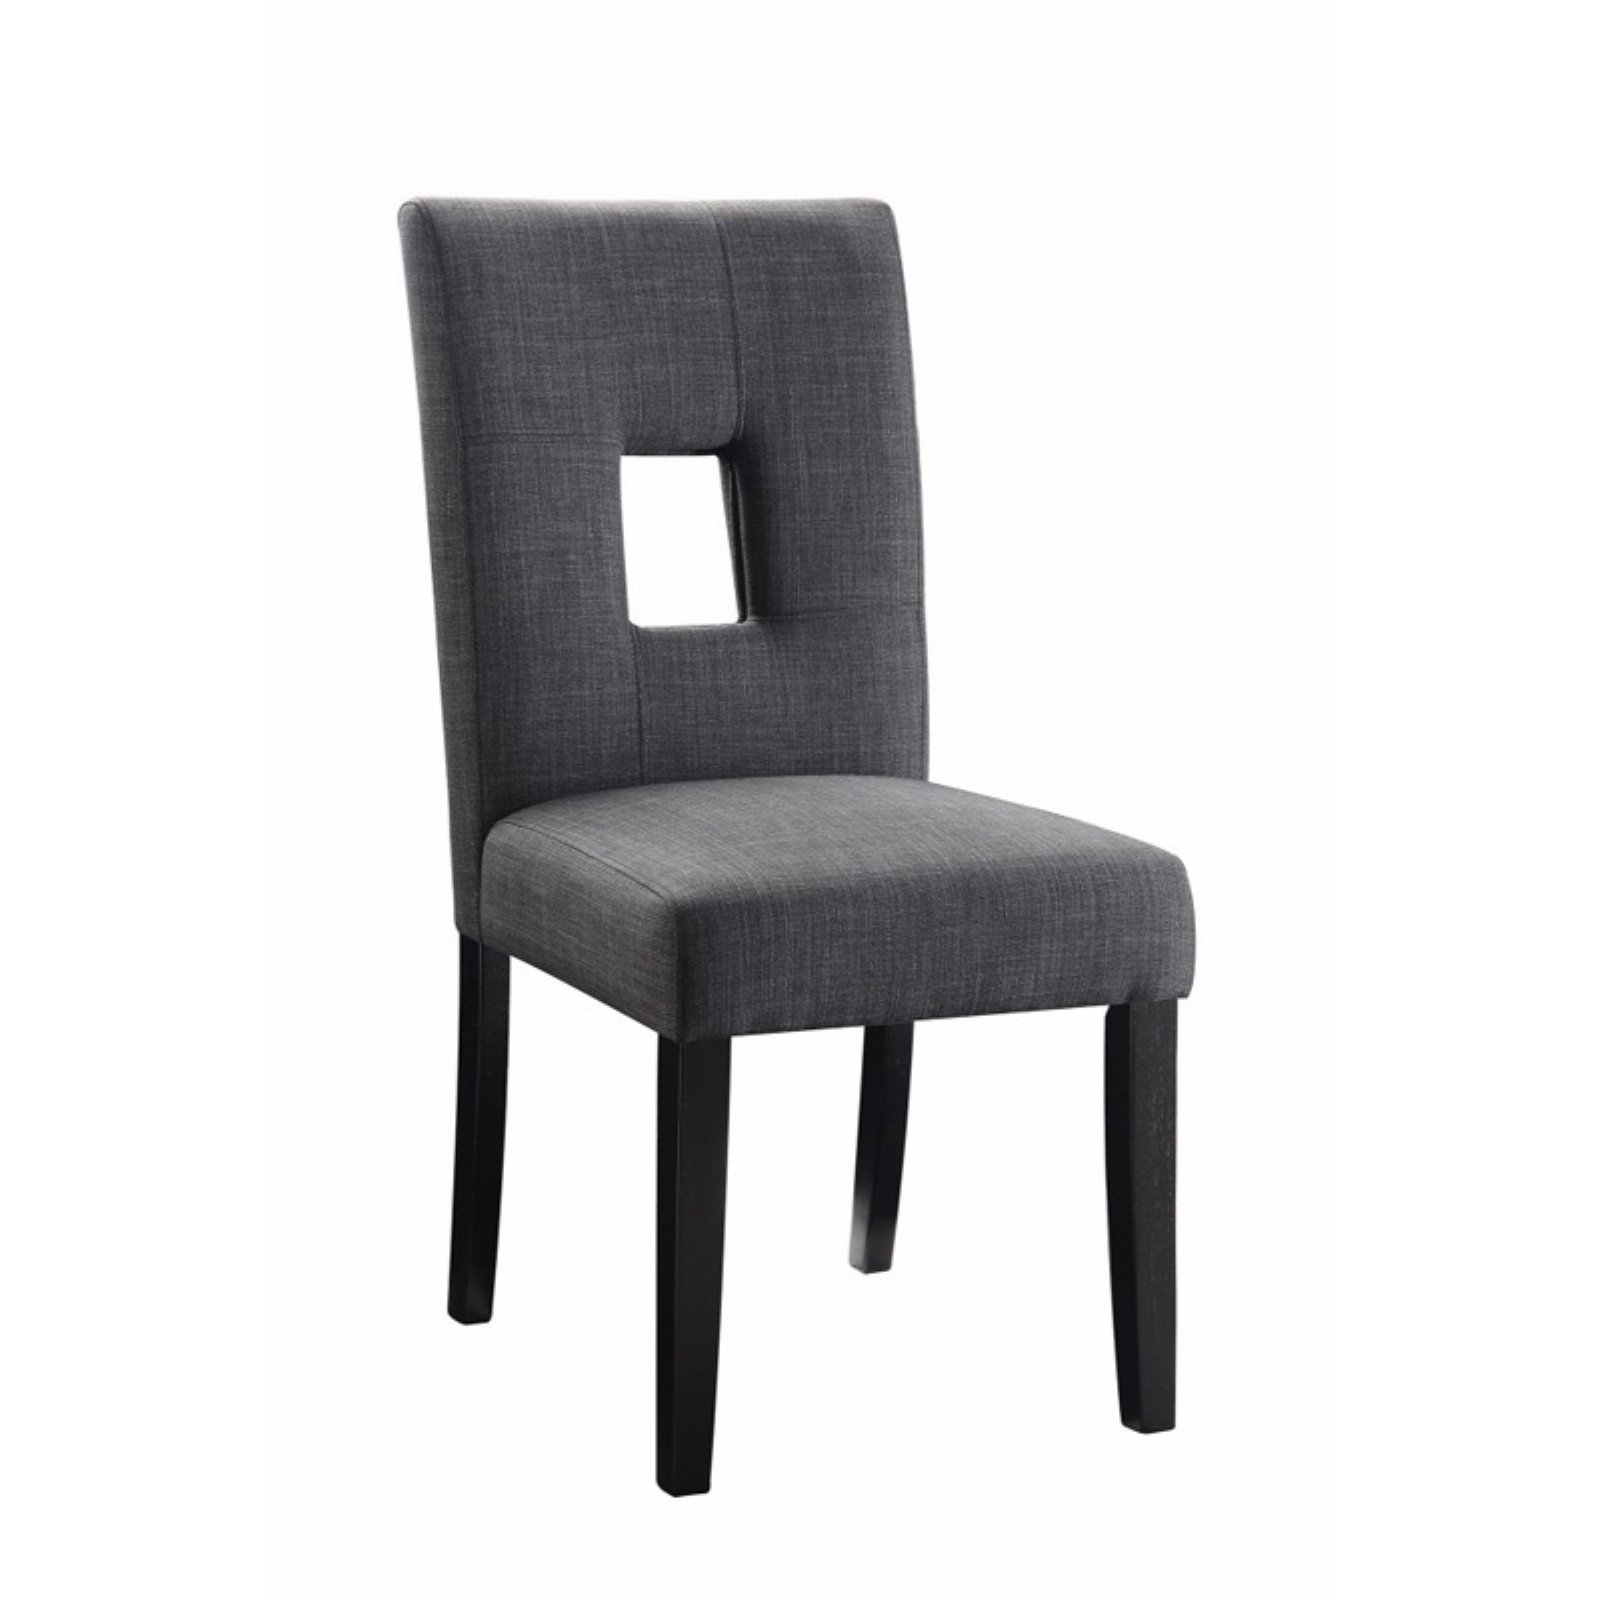 Benzara Keyhole Dining Side Chair Set Of 2 Upholstered Dining